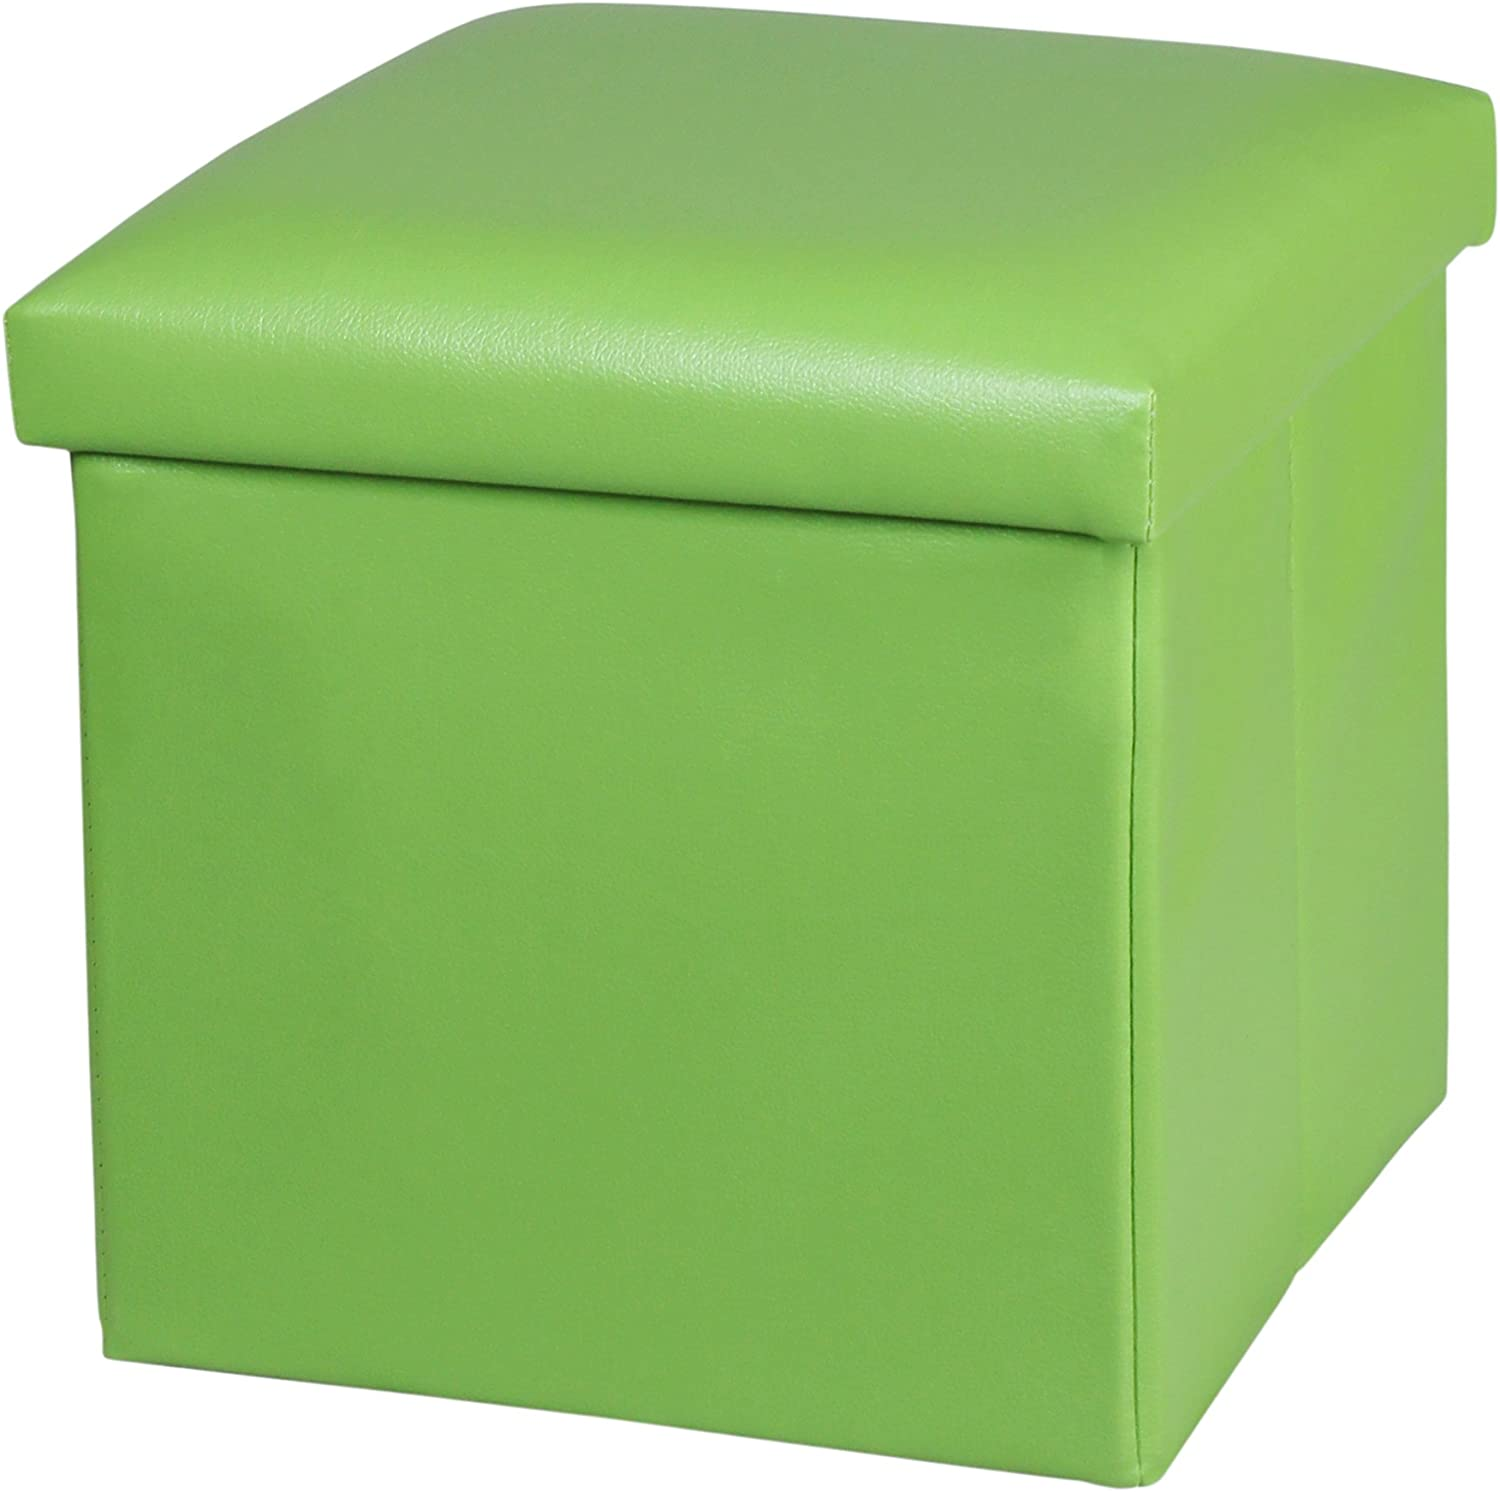 NISUNS OT01 Leather Folding Storage Ottoman Cube Footrest Seat, 12 X 12 X 12 Inches (Green)